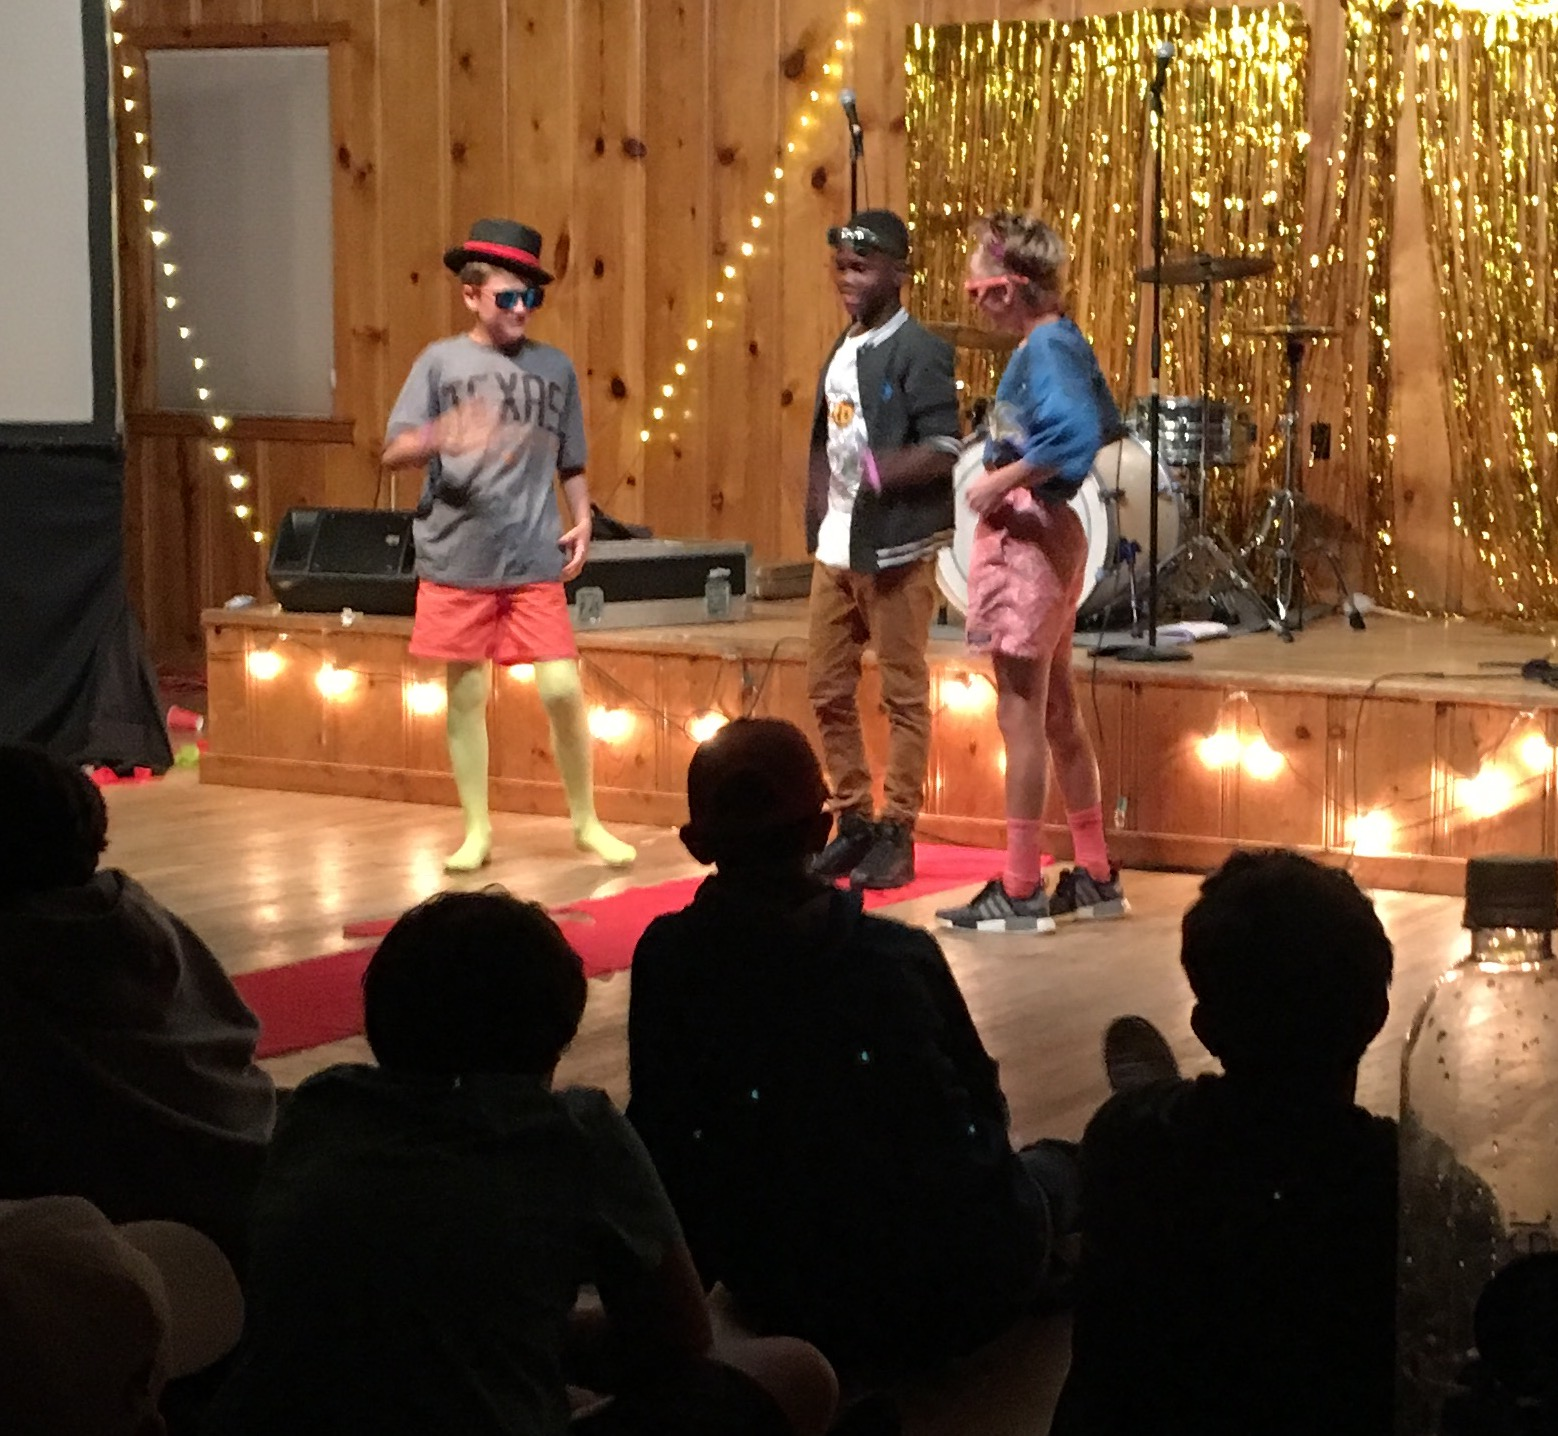 Our 6th grade boys stealing the Talent Show.